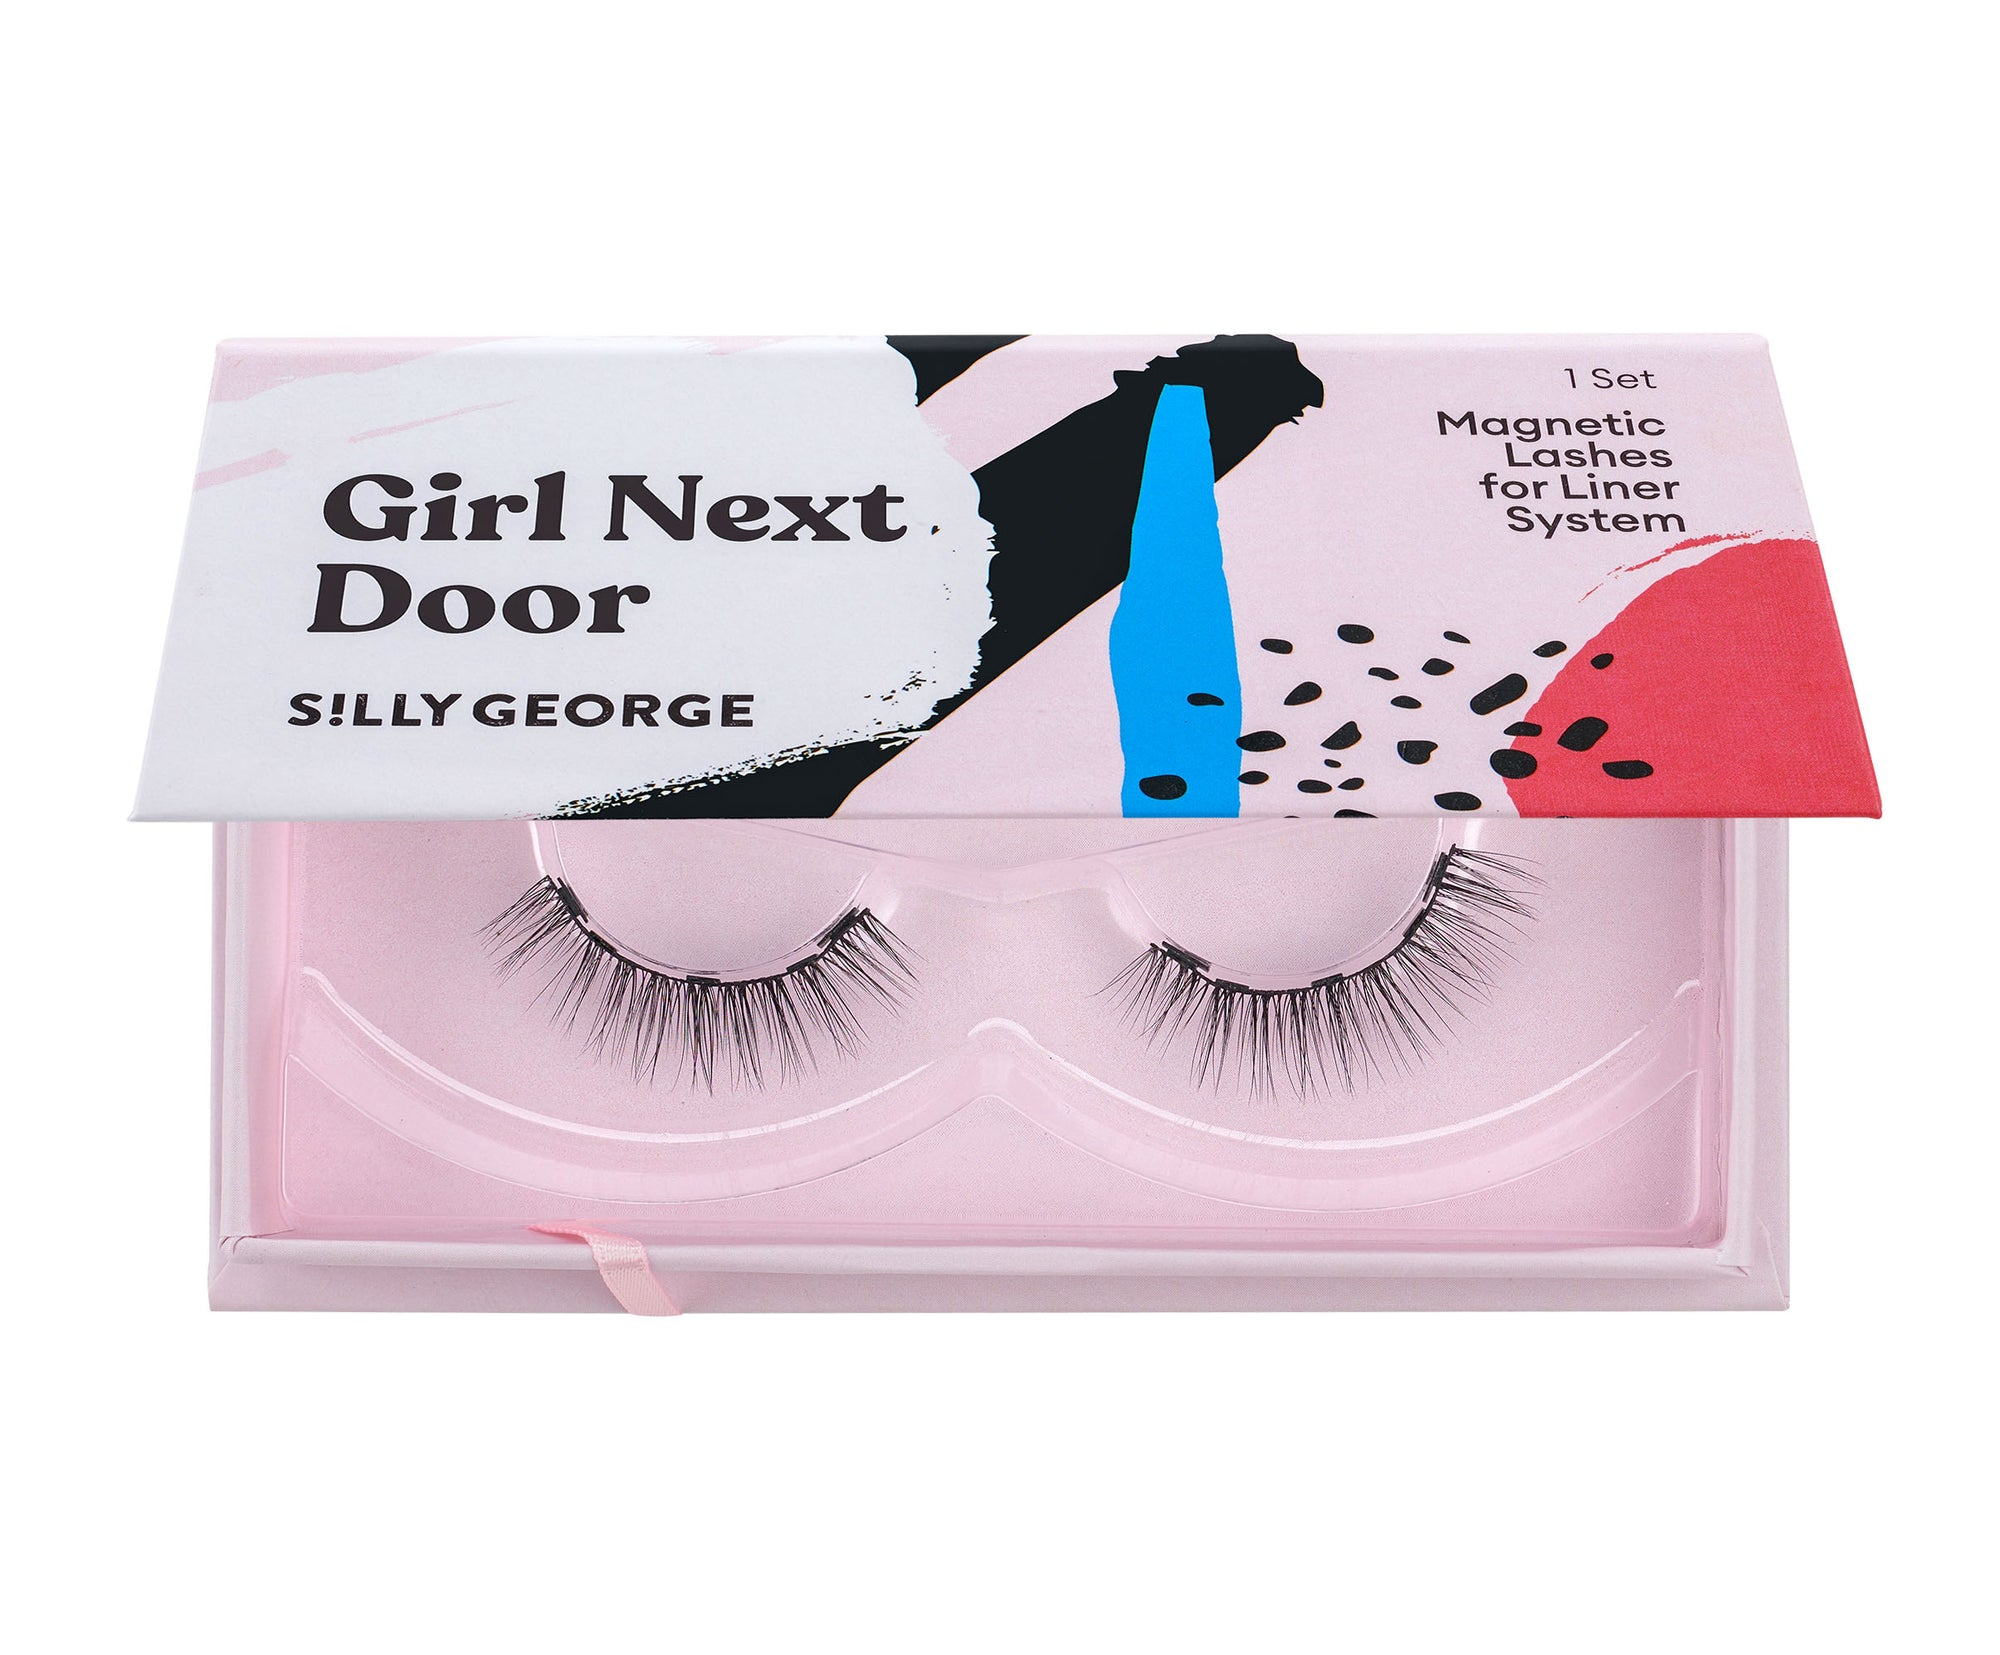 Girl Next Door Lash